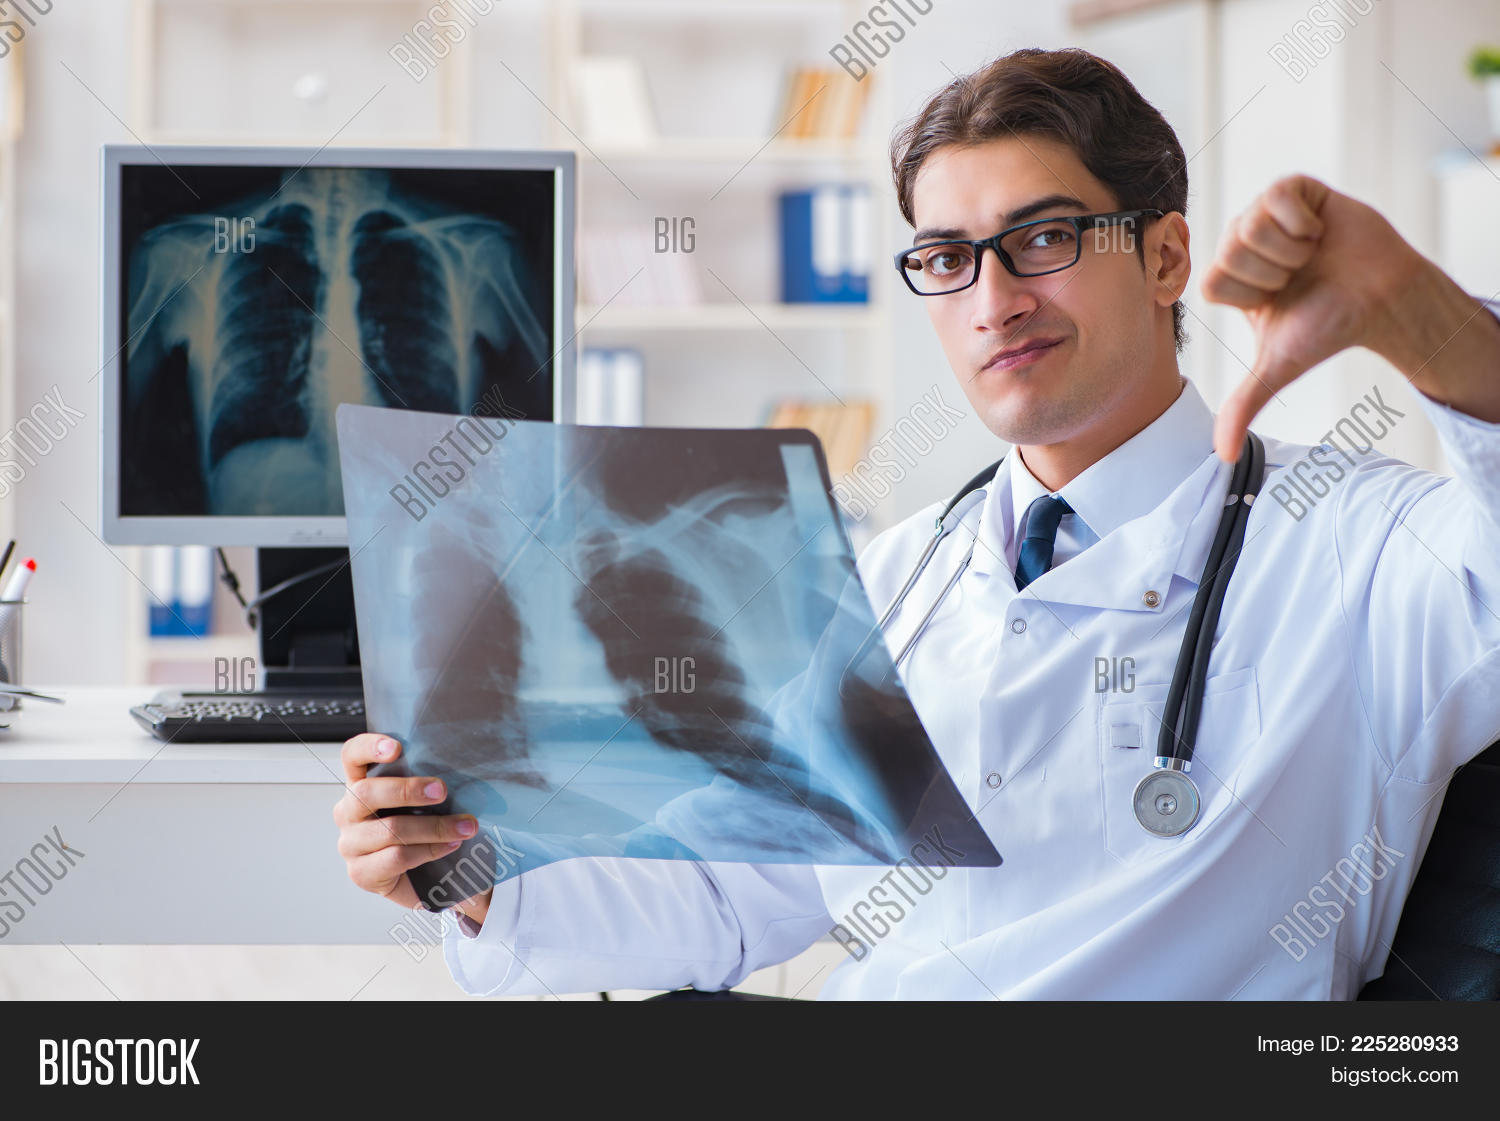 Doctor Radiologist Image Photo Free Trial Bigstock